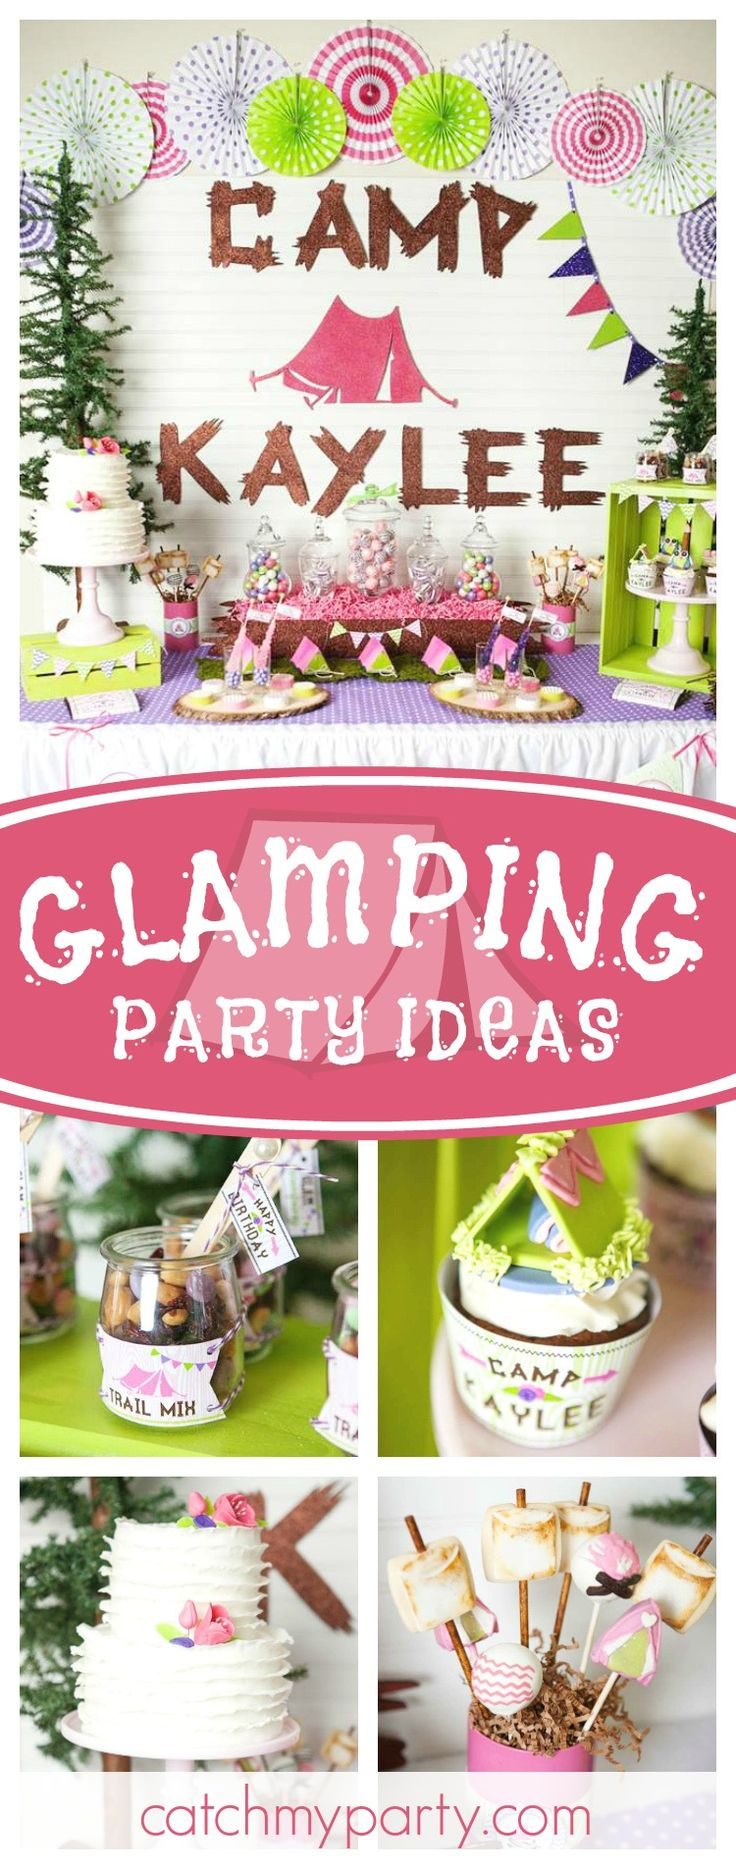 Go camping in style with this fantastic Glamping birthday party!! The cupcakes topped with little tents are gorgeous!! See more party ideas and share yours at CatchMyParty.com